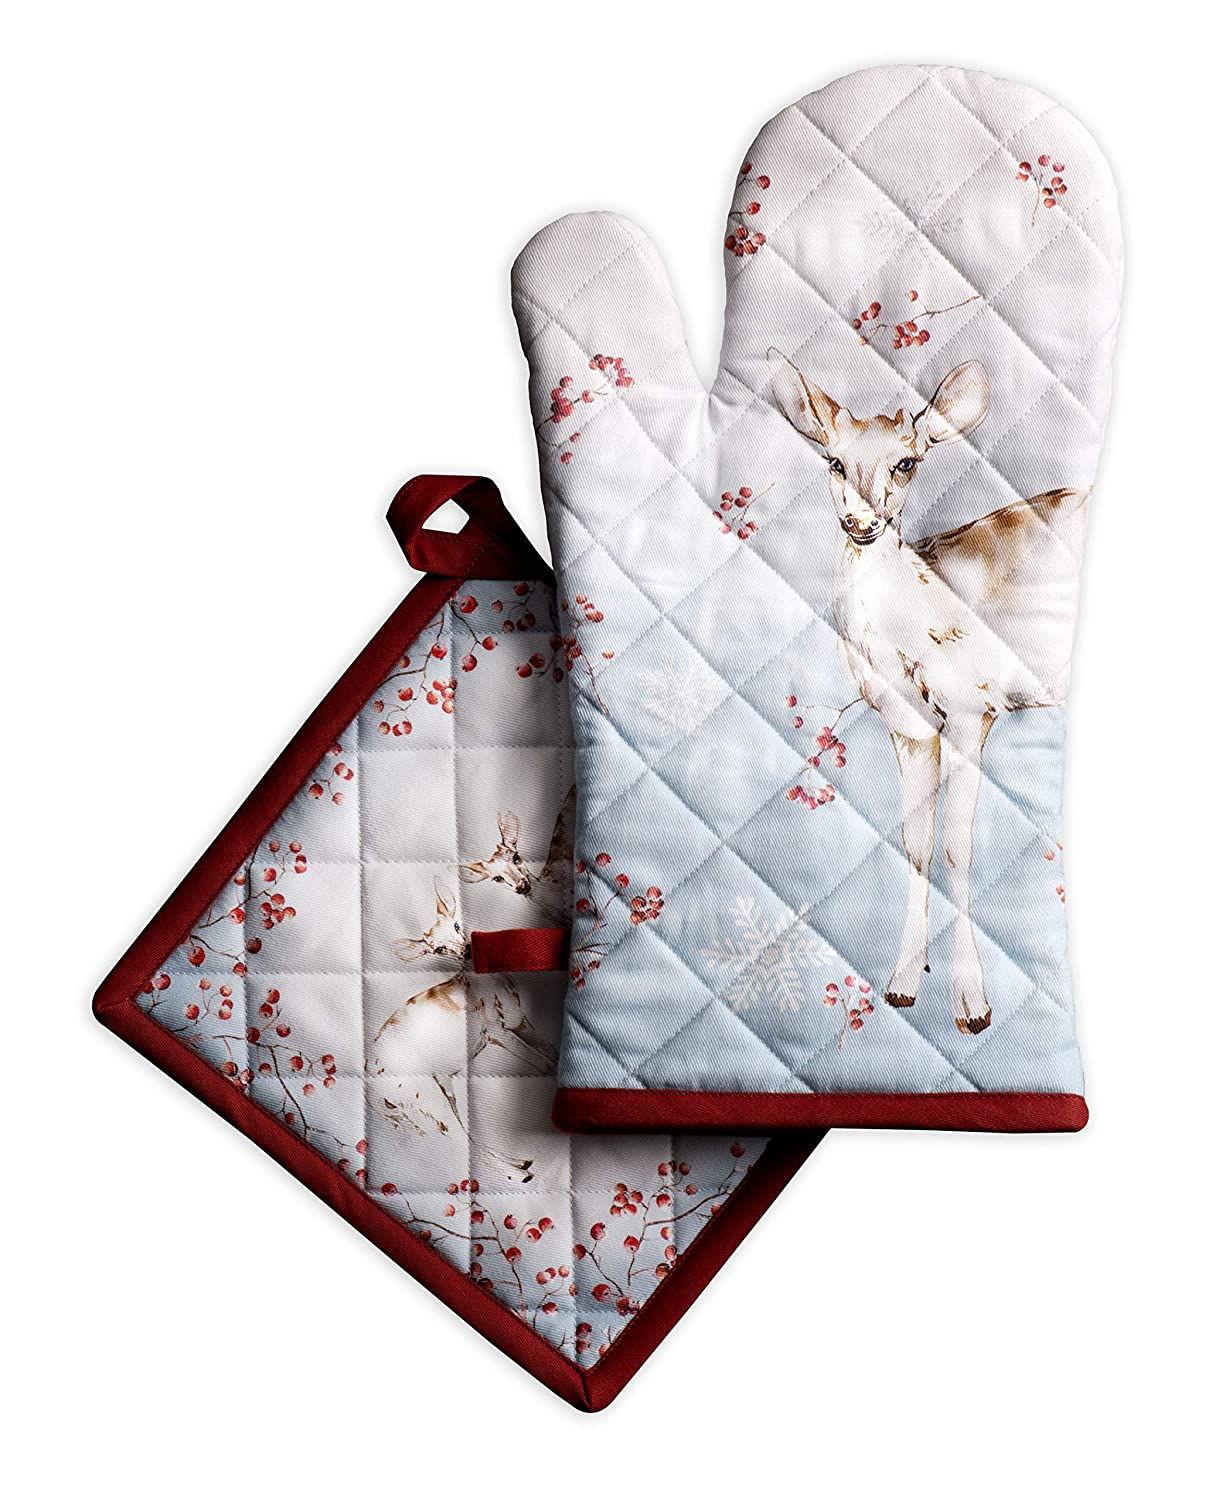 Maison d' Hermine Fairytale Forest 100% Cotton Set of Oven Mitt (7.5 Inch by 13 Inch) and Pot Holder (8 Inch by 8 Inch).